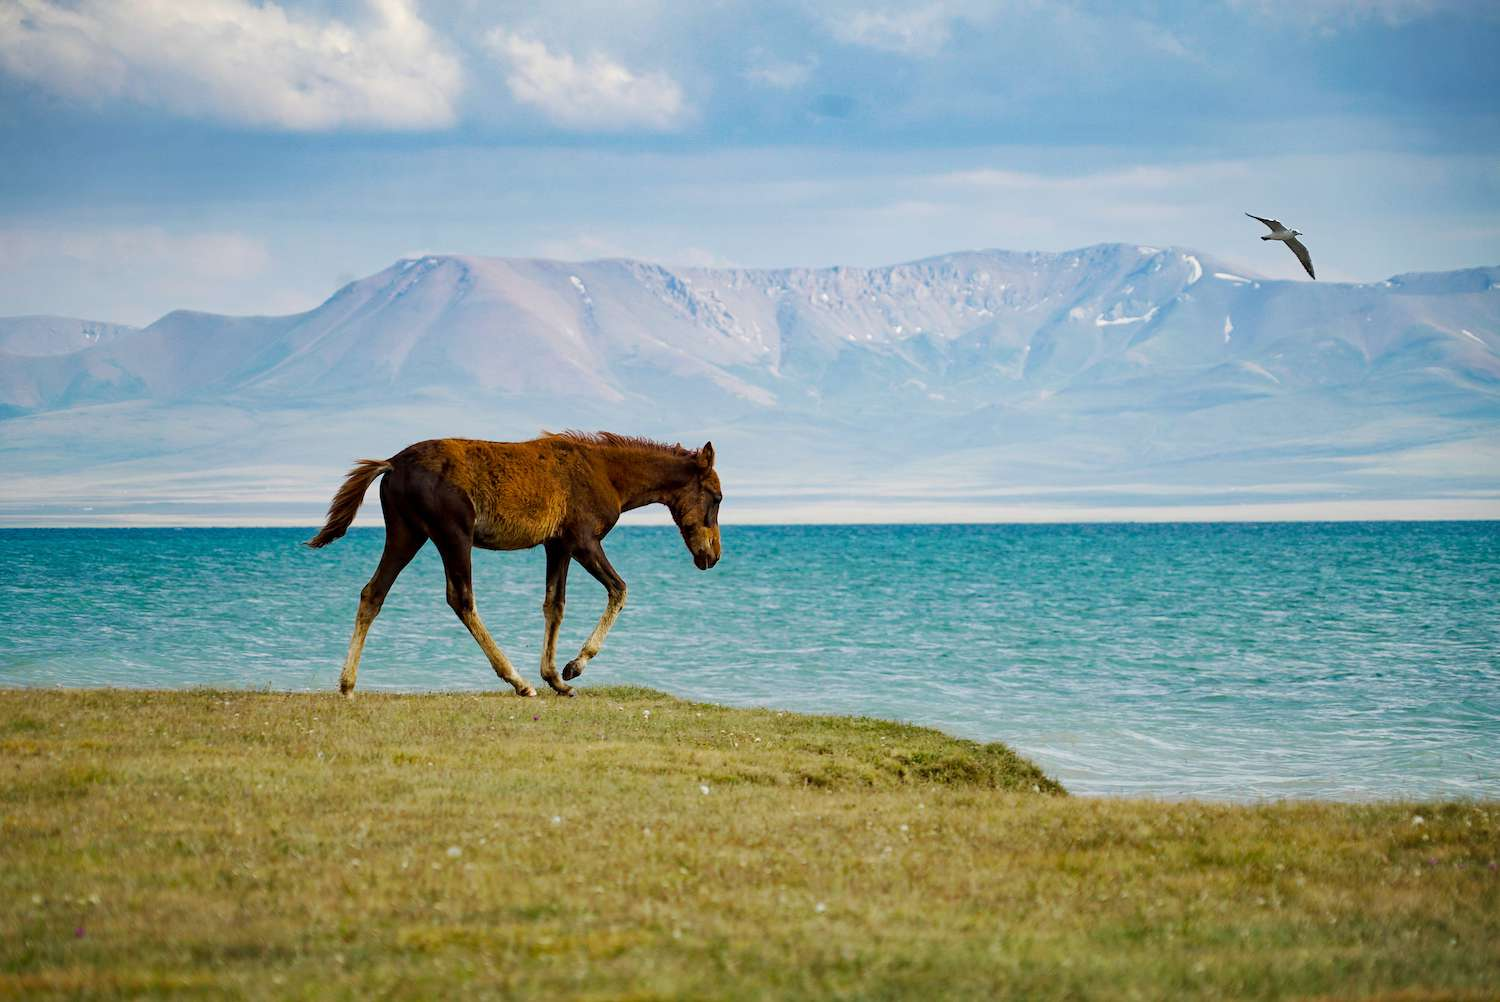 A horse trots in front of the blue waters of Song Kul on an overcast day